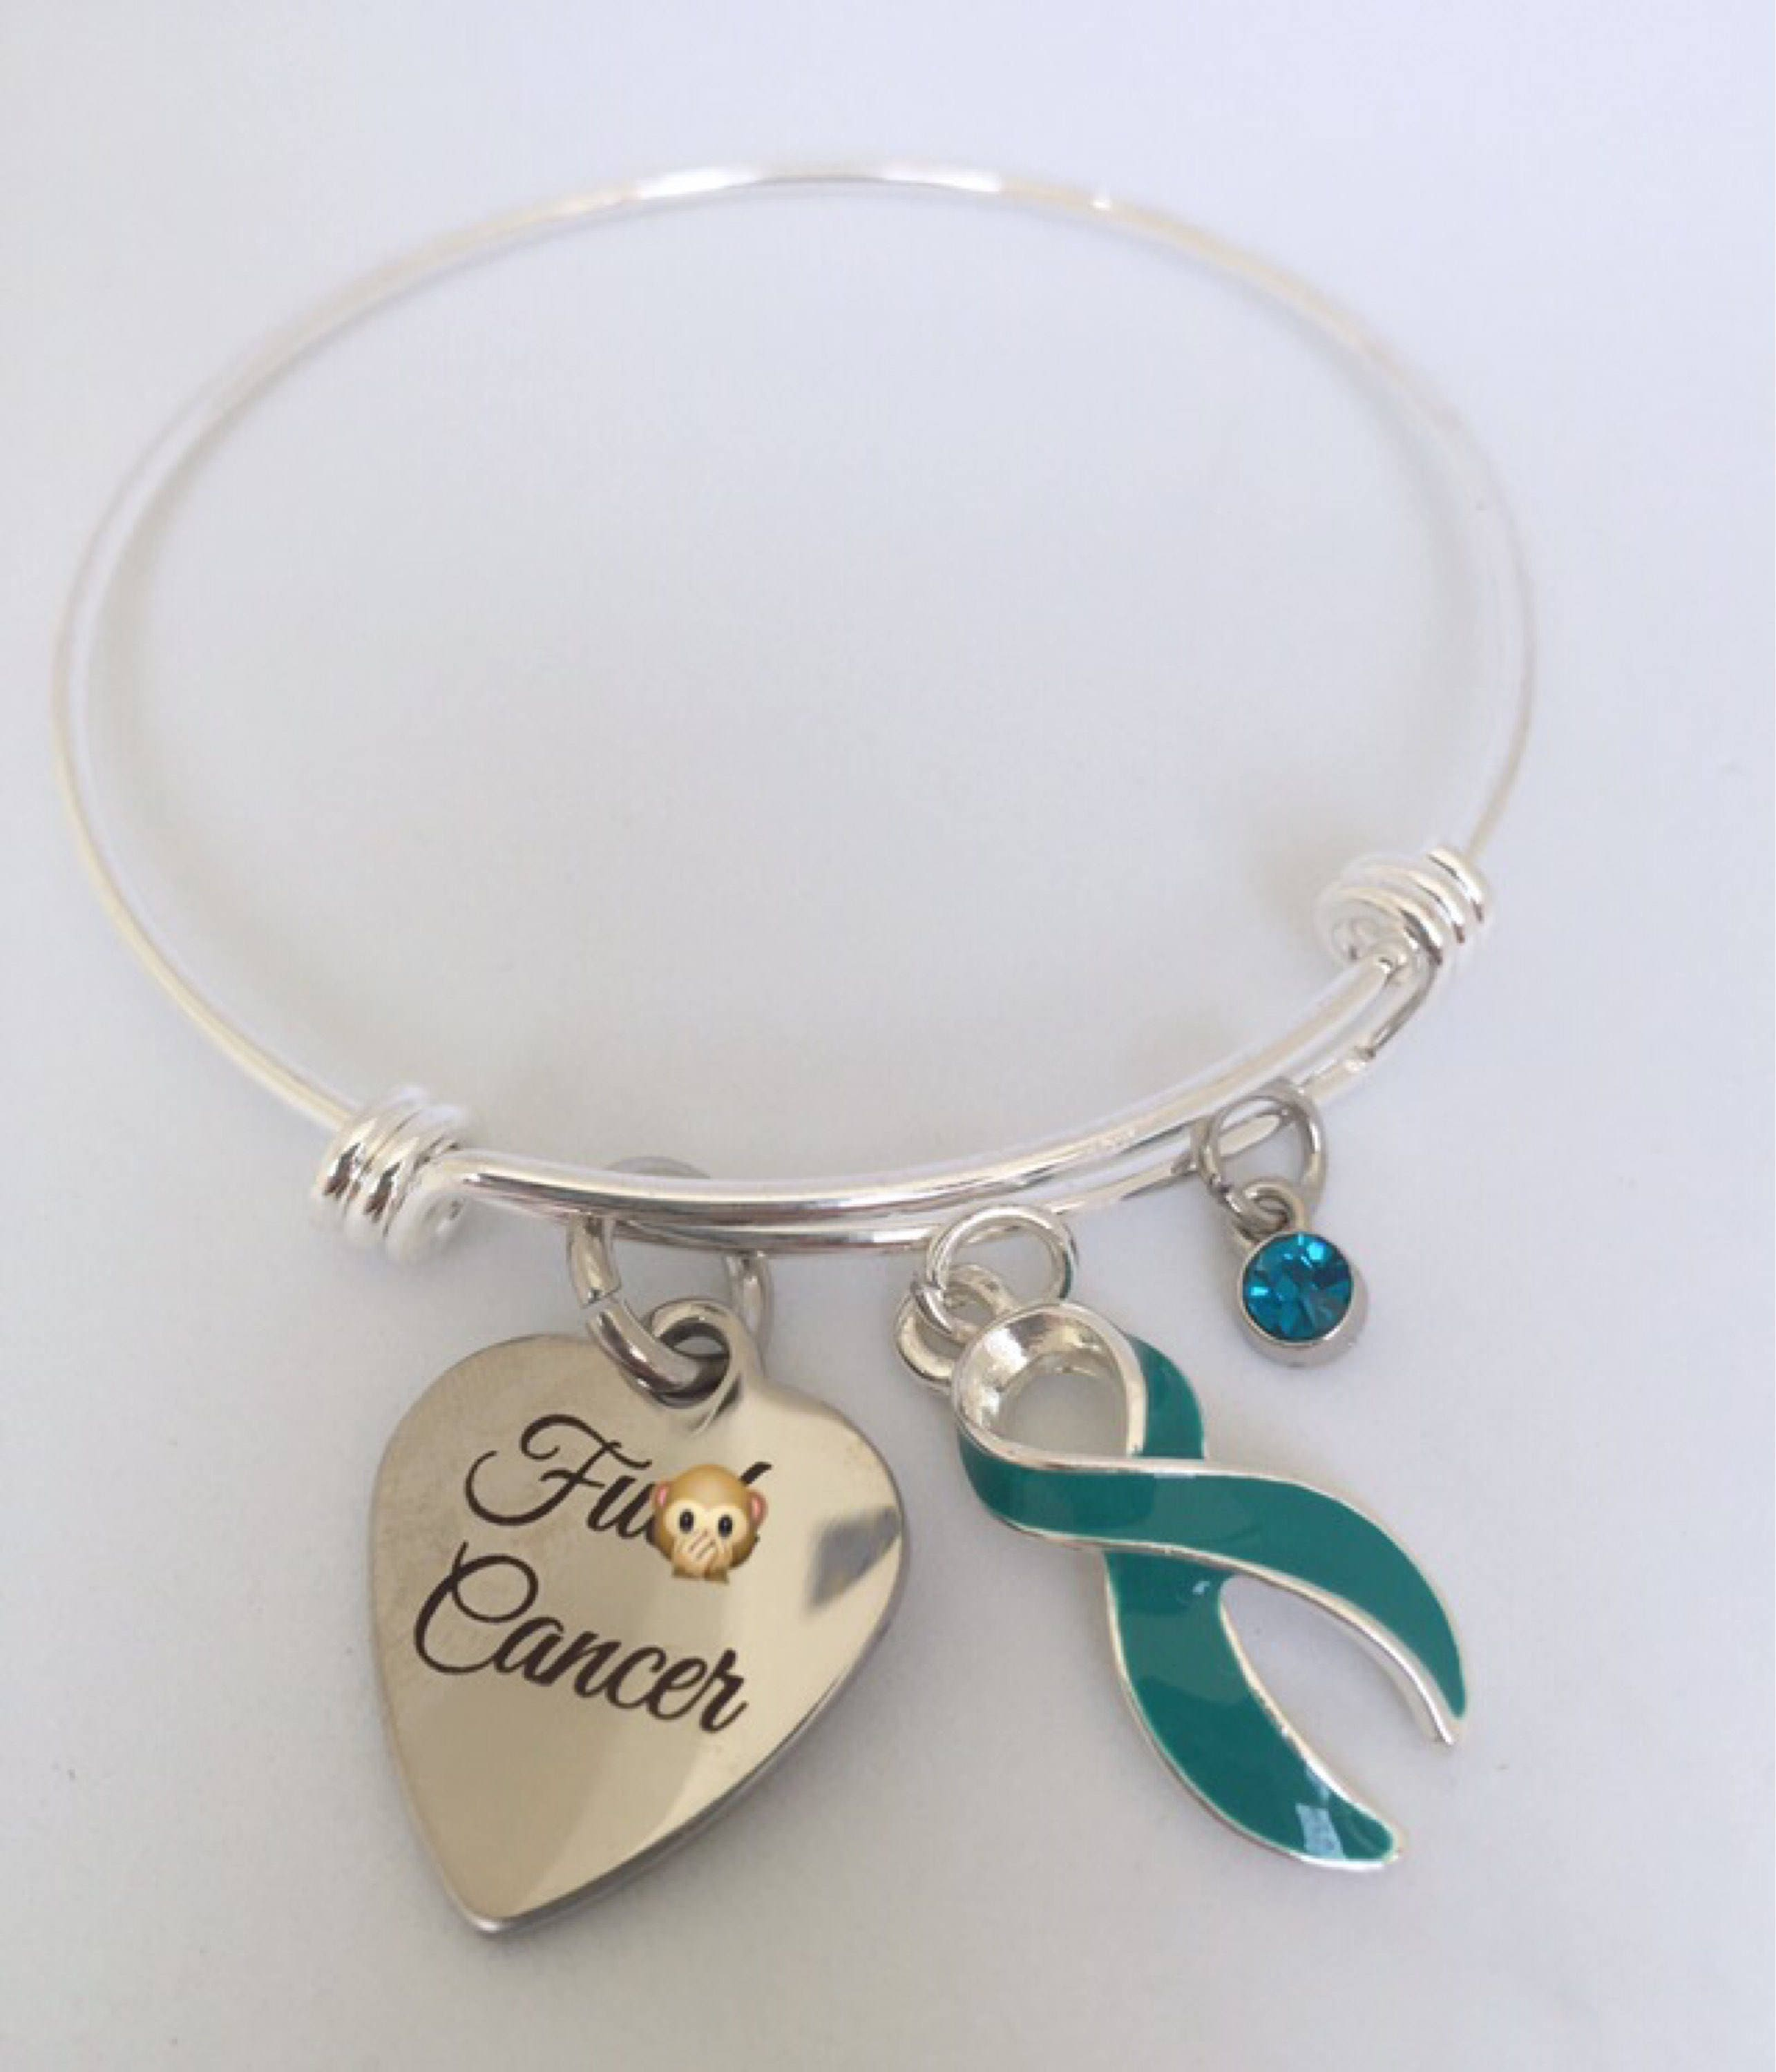 ptsd myasthenia by awareness ovarian bracelet gravis cancer teal pin